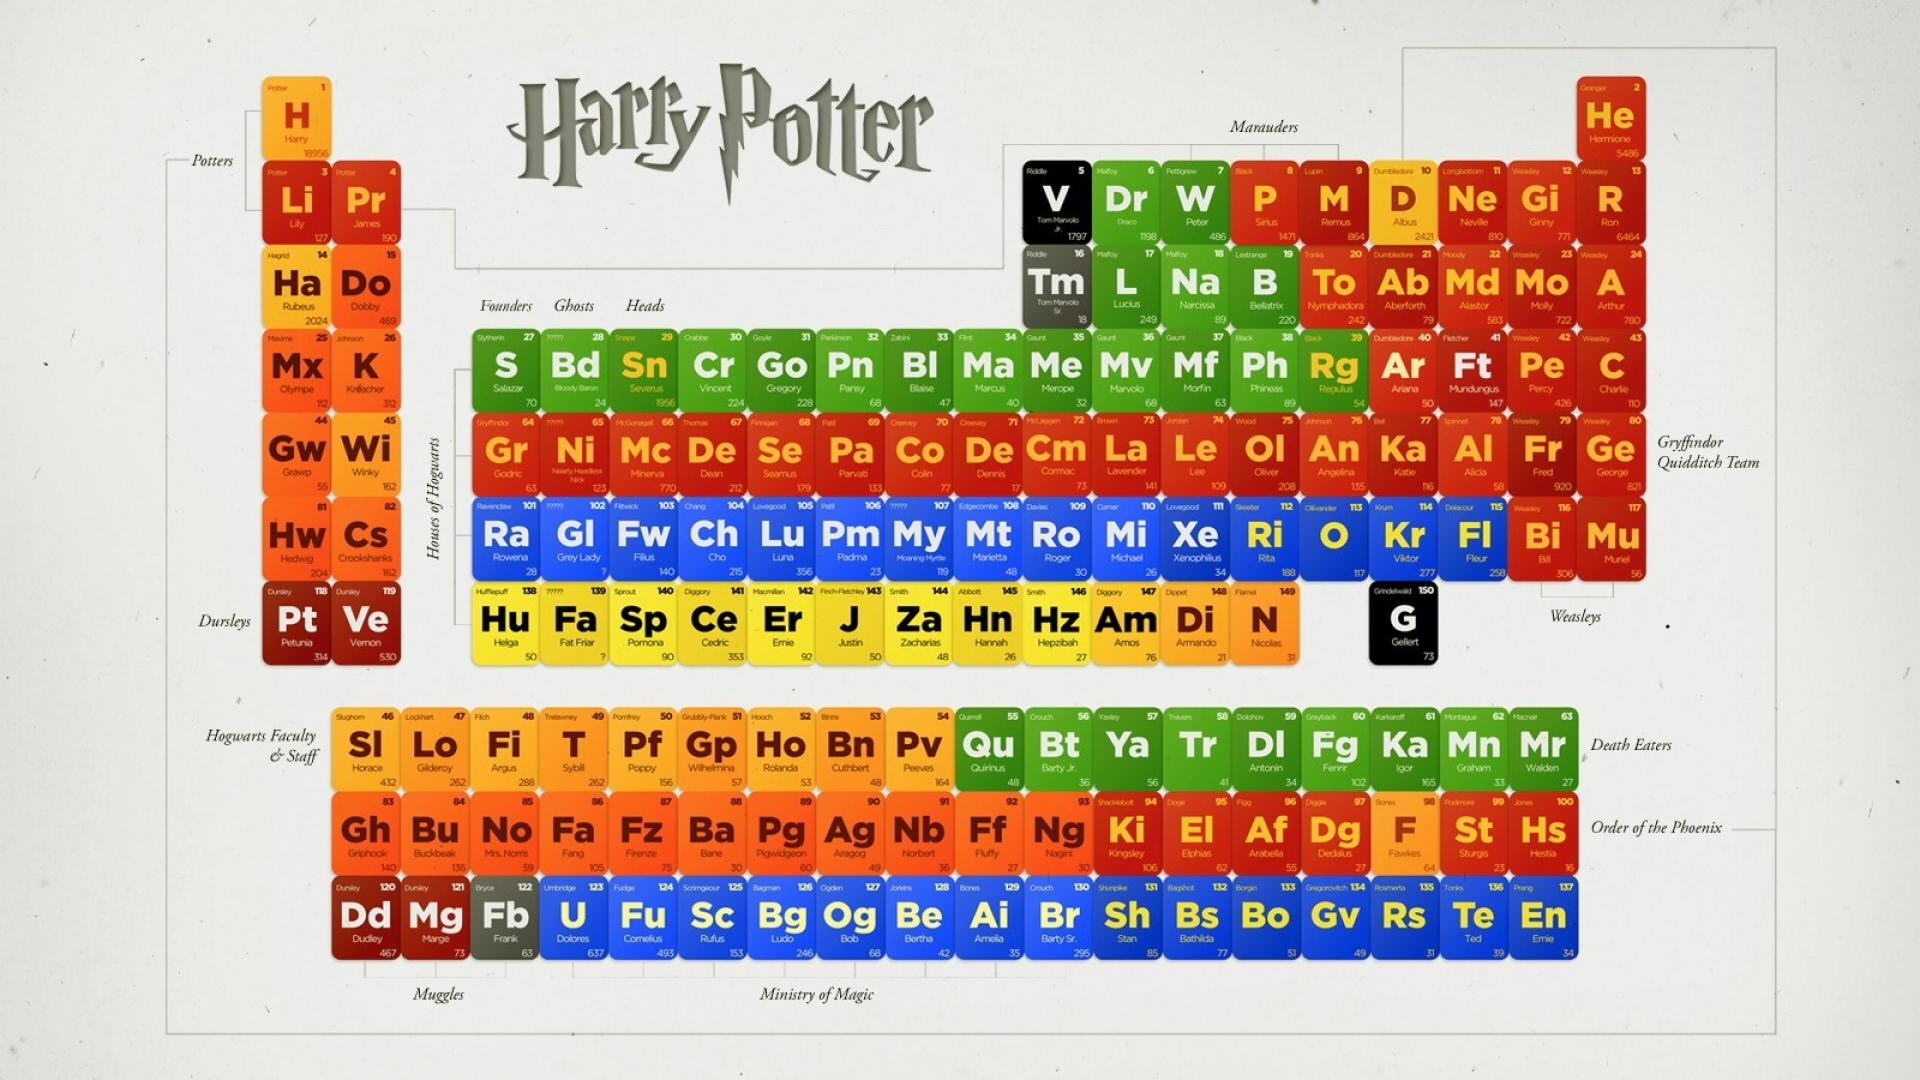 Harry Potter Laptop Wallpaper Text Games Font Line Indoor Games And Sports Screenshot Number Tabletop Game Graphics 2486128 Wallpaperkiss